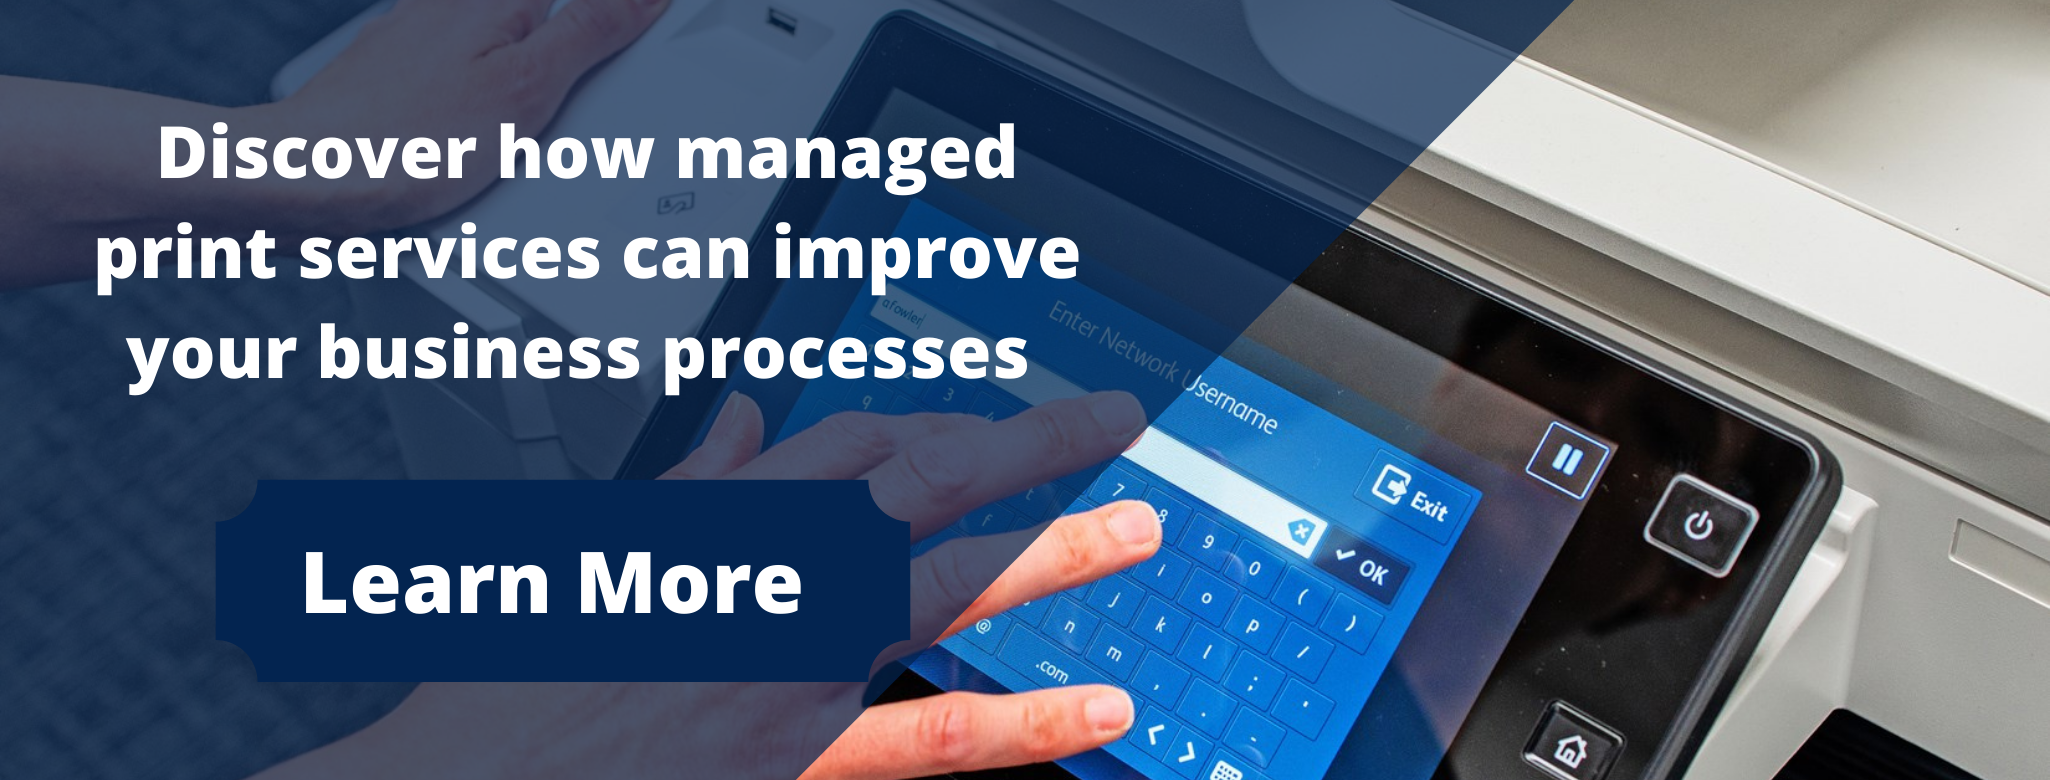 Infographic: Discover how managed print services can improve your business processes